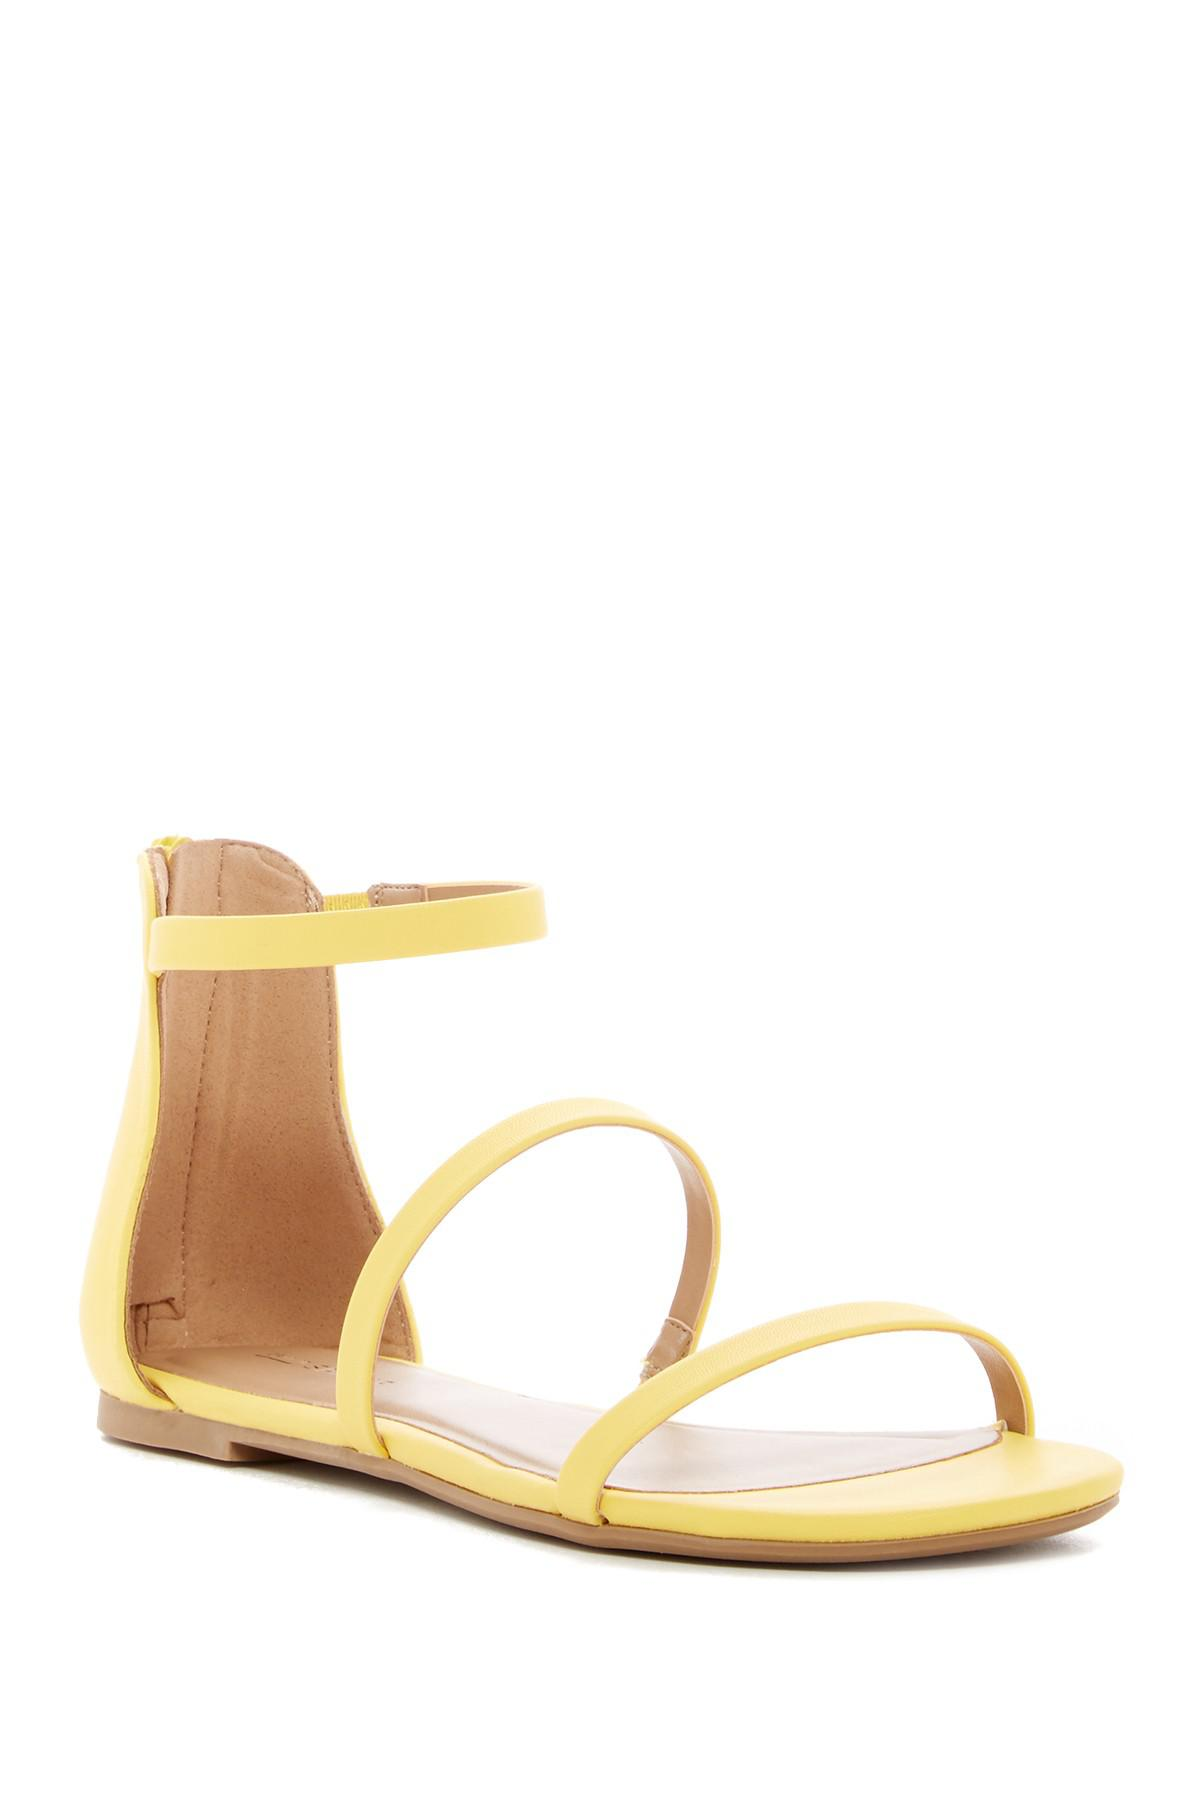 discount new styles choice cheap price Call It Spring Call It Spring Keahi Sandals Yellow cheap pick a best cheap low shipping sale pay with paypal 46uf8l